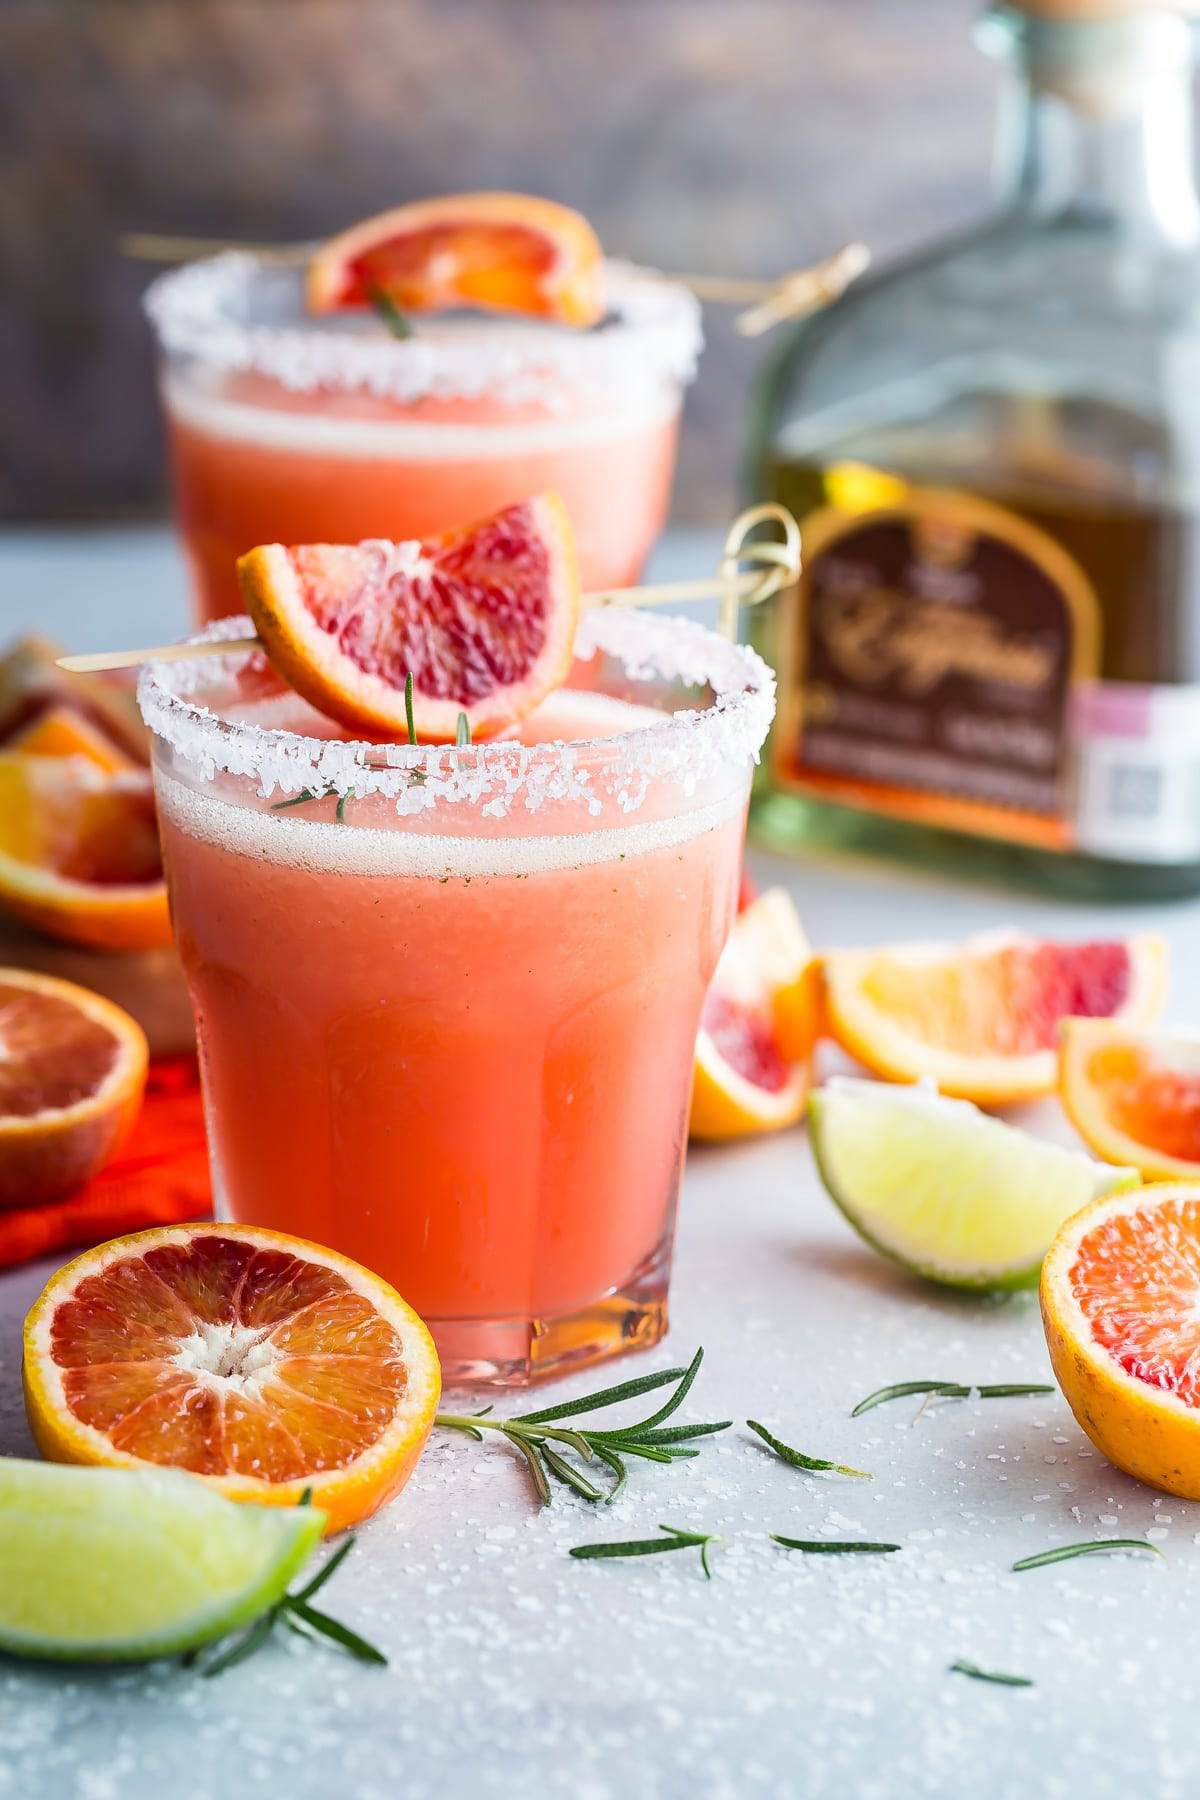 Cool and refreshing blood orange margarita with fresh rosemary!